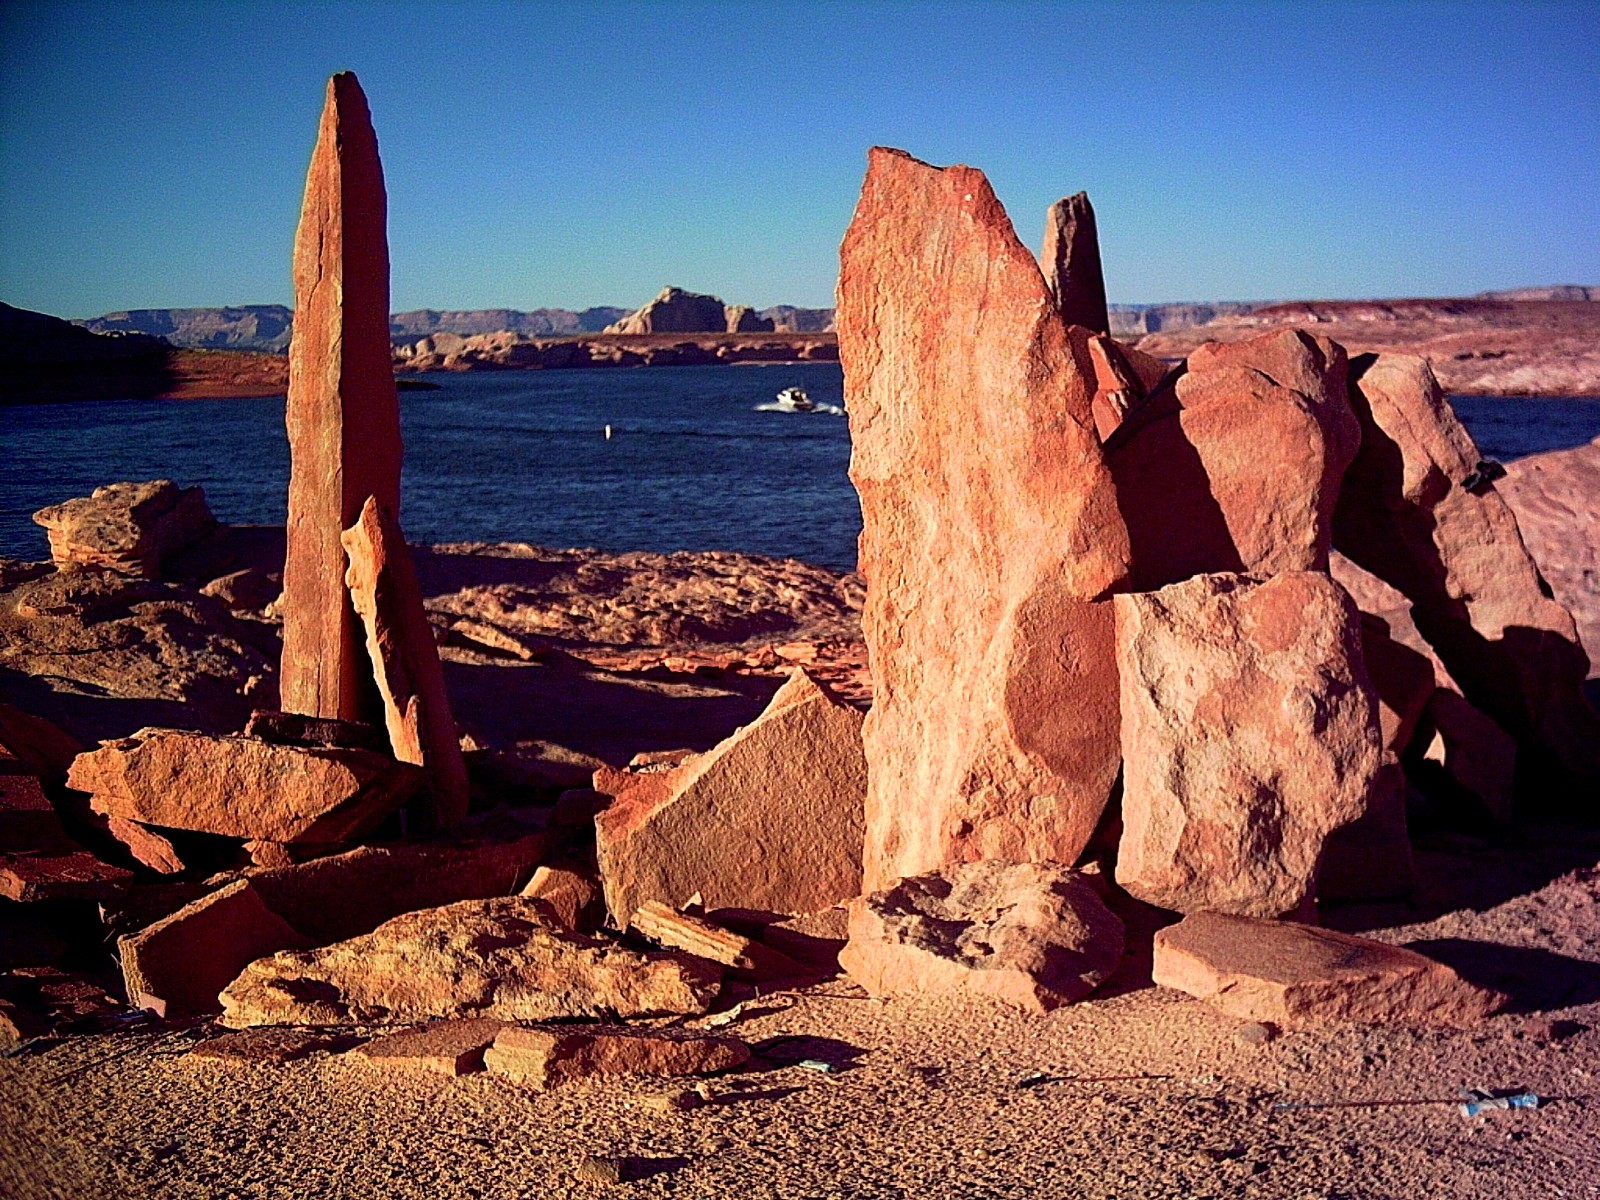 shoreline-rocks-lake-powell-1532721.jpg